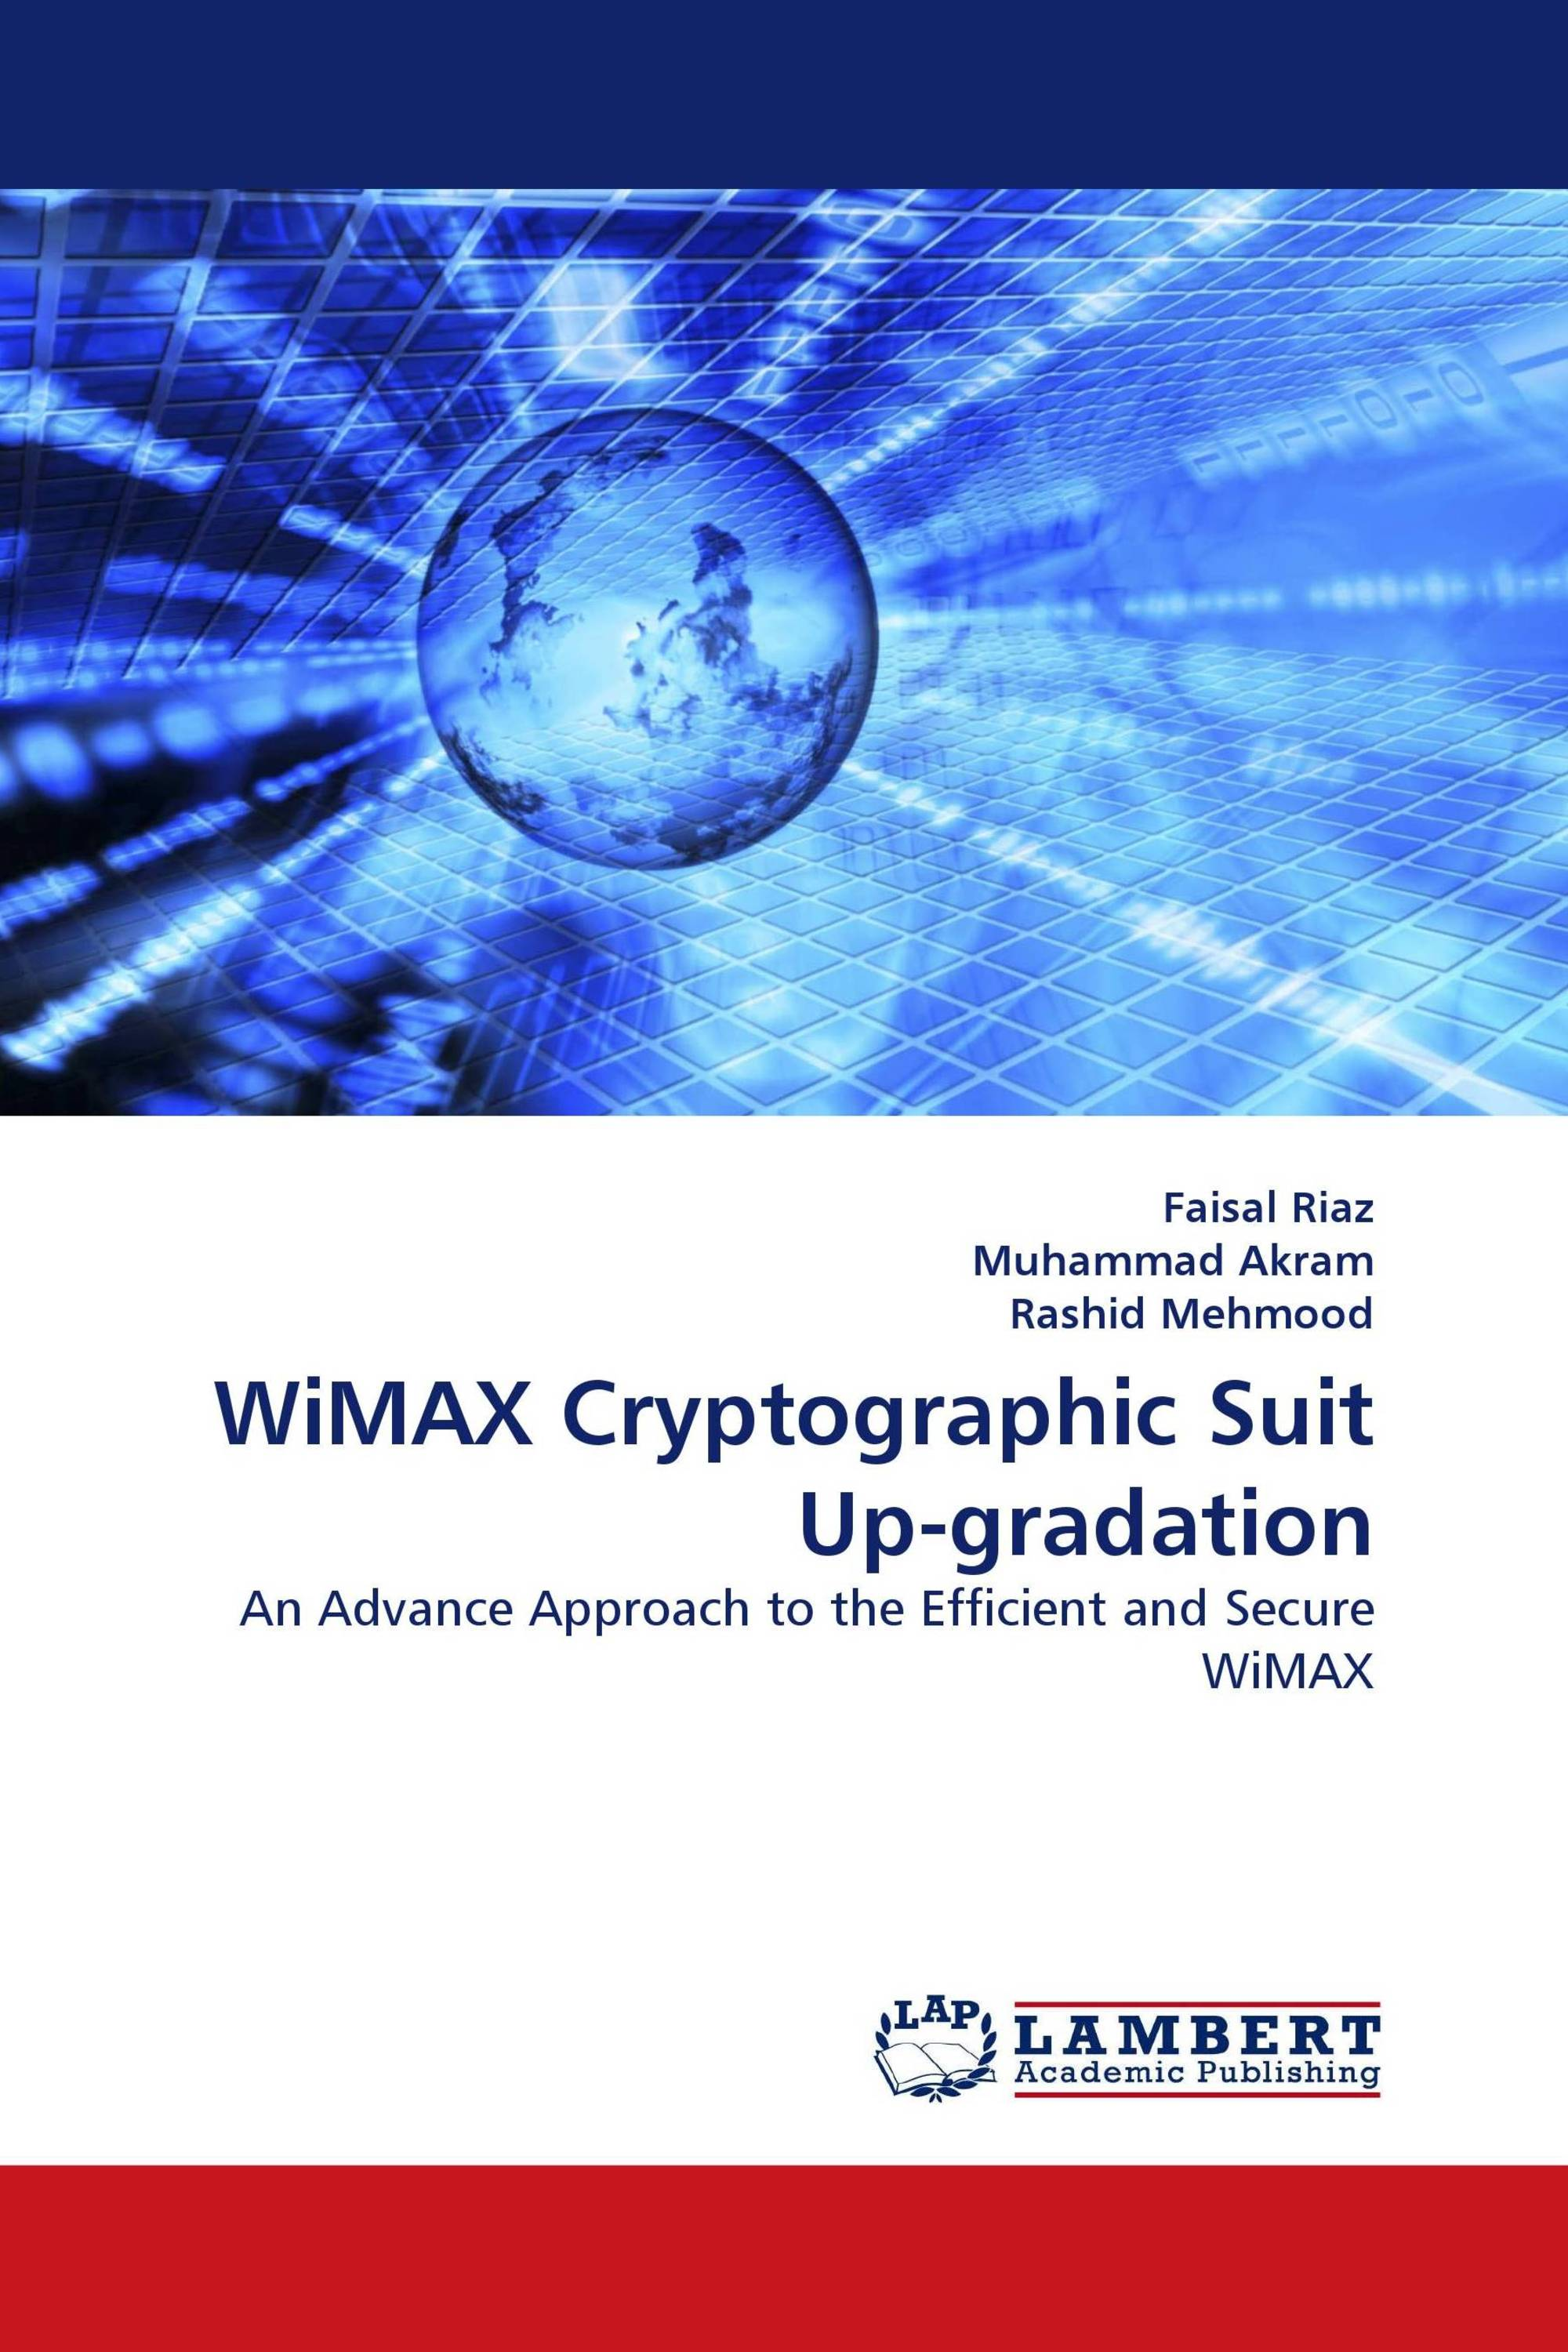 WiMAX Cryptographic Suit Up-gradation